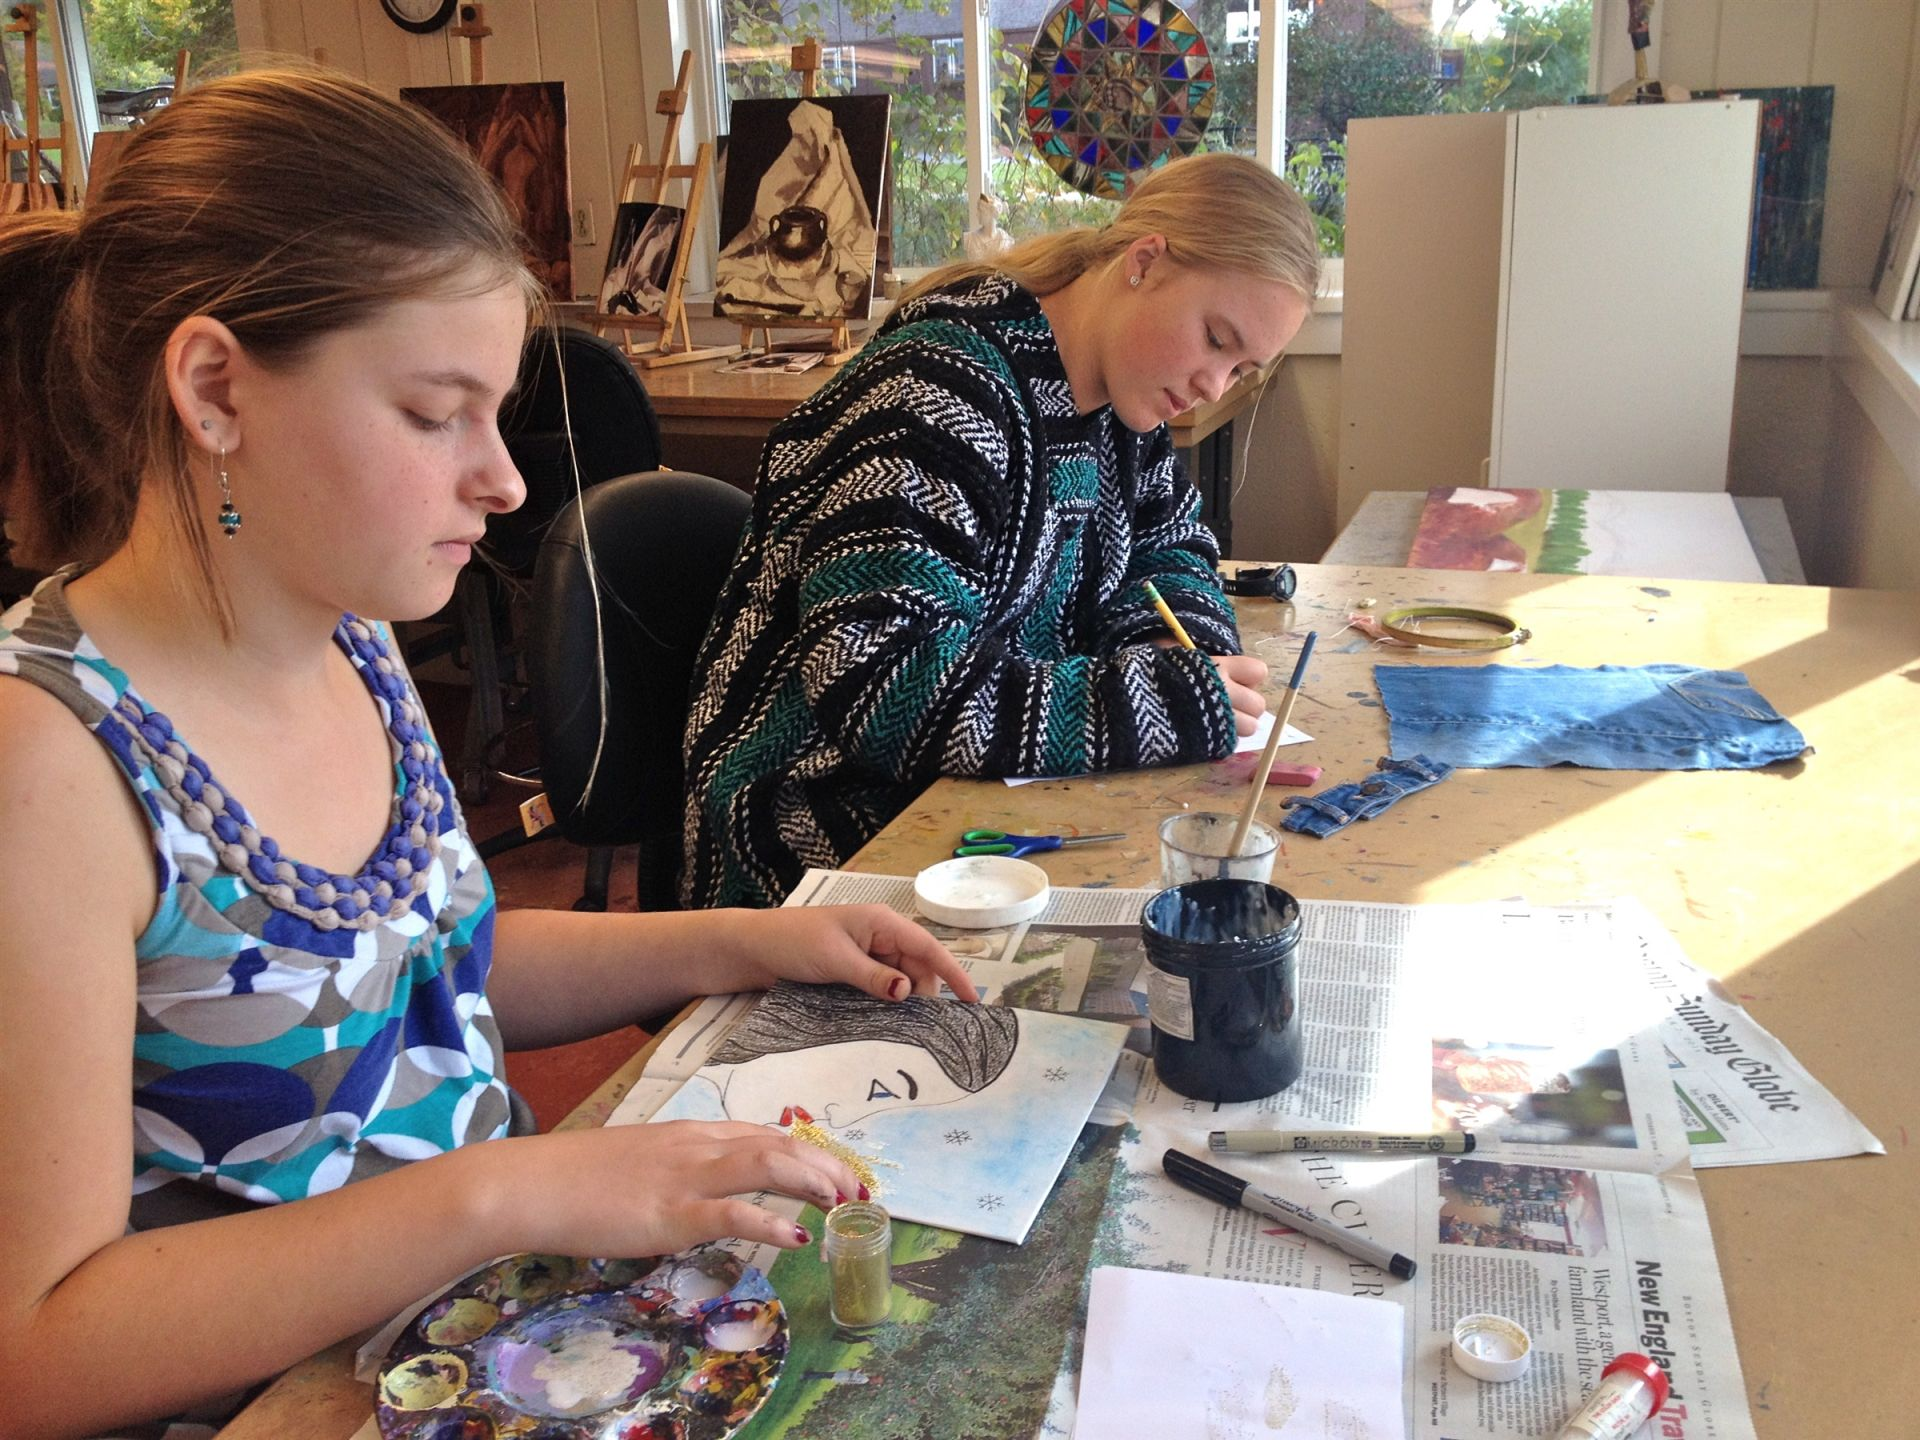 Amelia adding gold glitter and Nicole embroidering on their book covers. Very original!